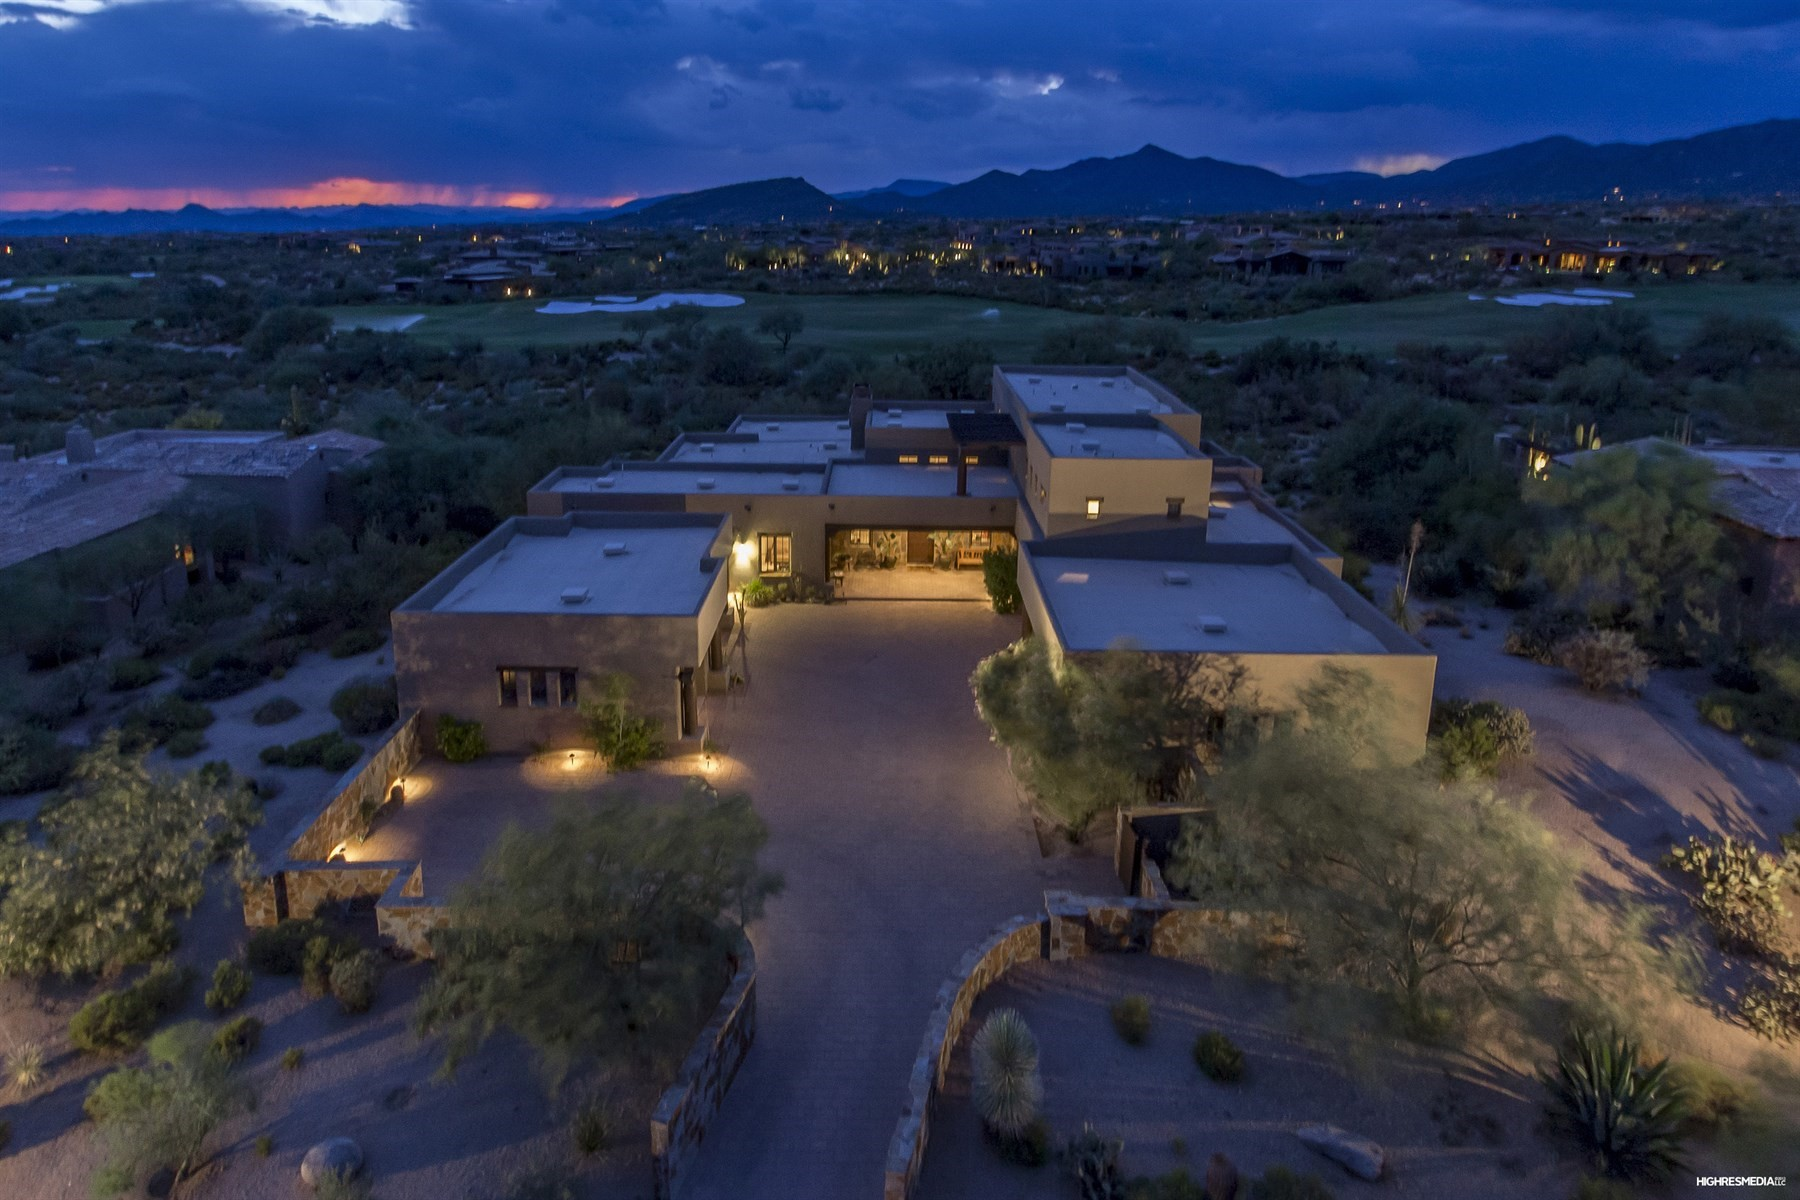 Moradia para Venda às Custom residence Perched above the award-winning Mirabel Golf course 10970 E Wildcat Hill Rd Scottsdale, Arizona, 85262 Estados Unidos